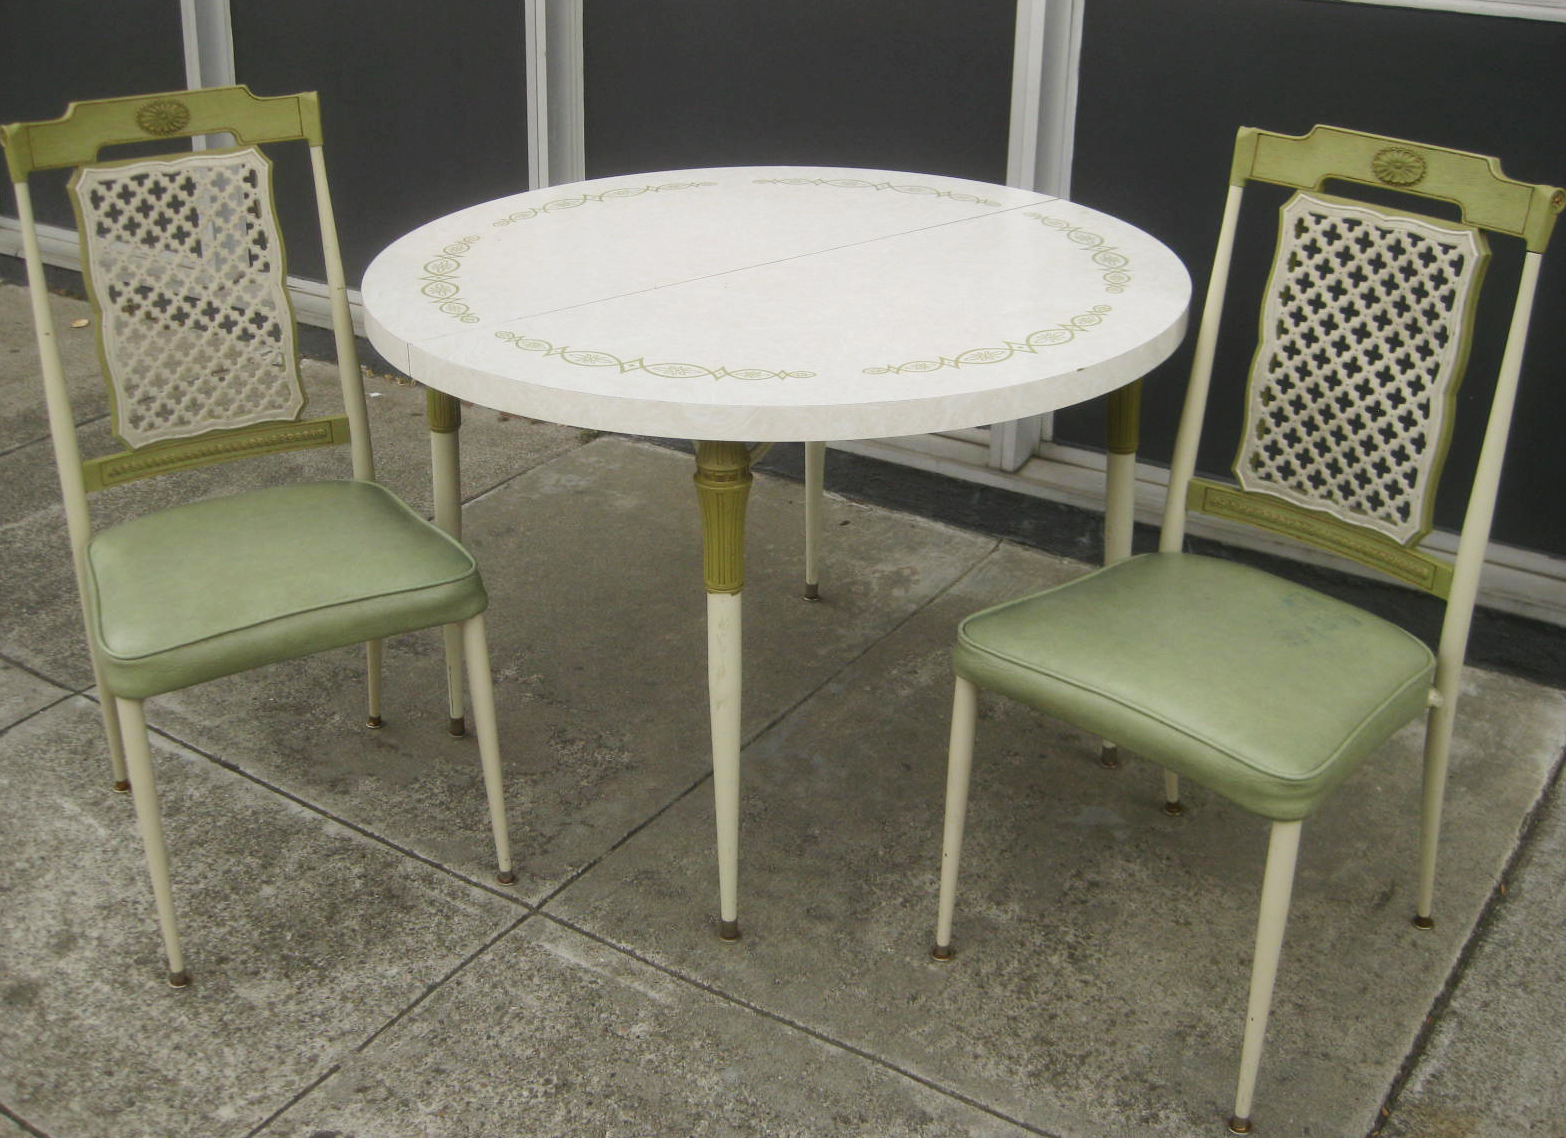 Amazing SOLD - Retro Kitchen Table and 2 Chairs - $70 1566 x 1138 · 1155 kB · jpeg